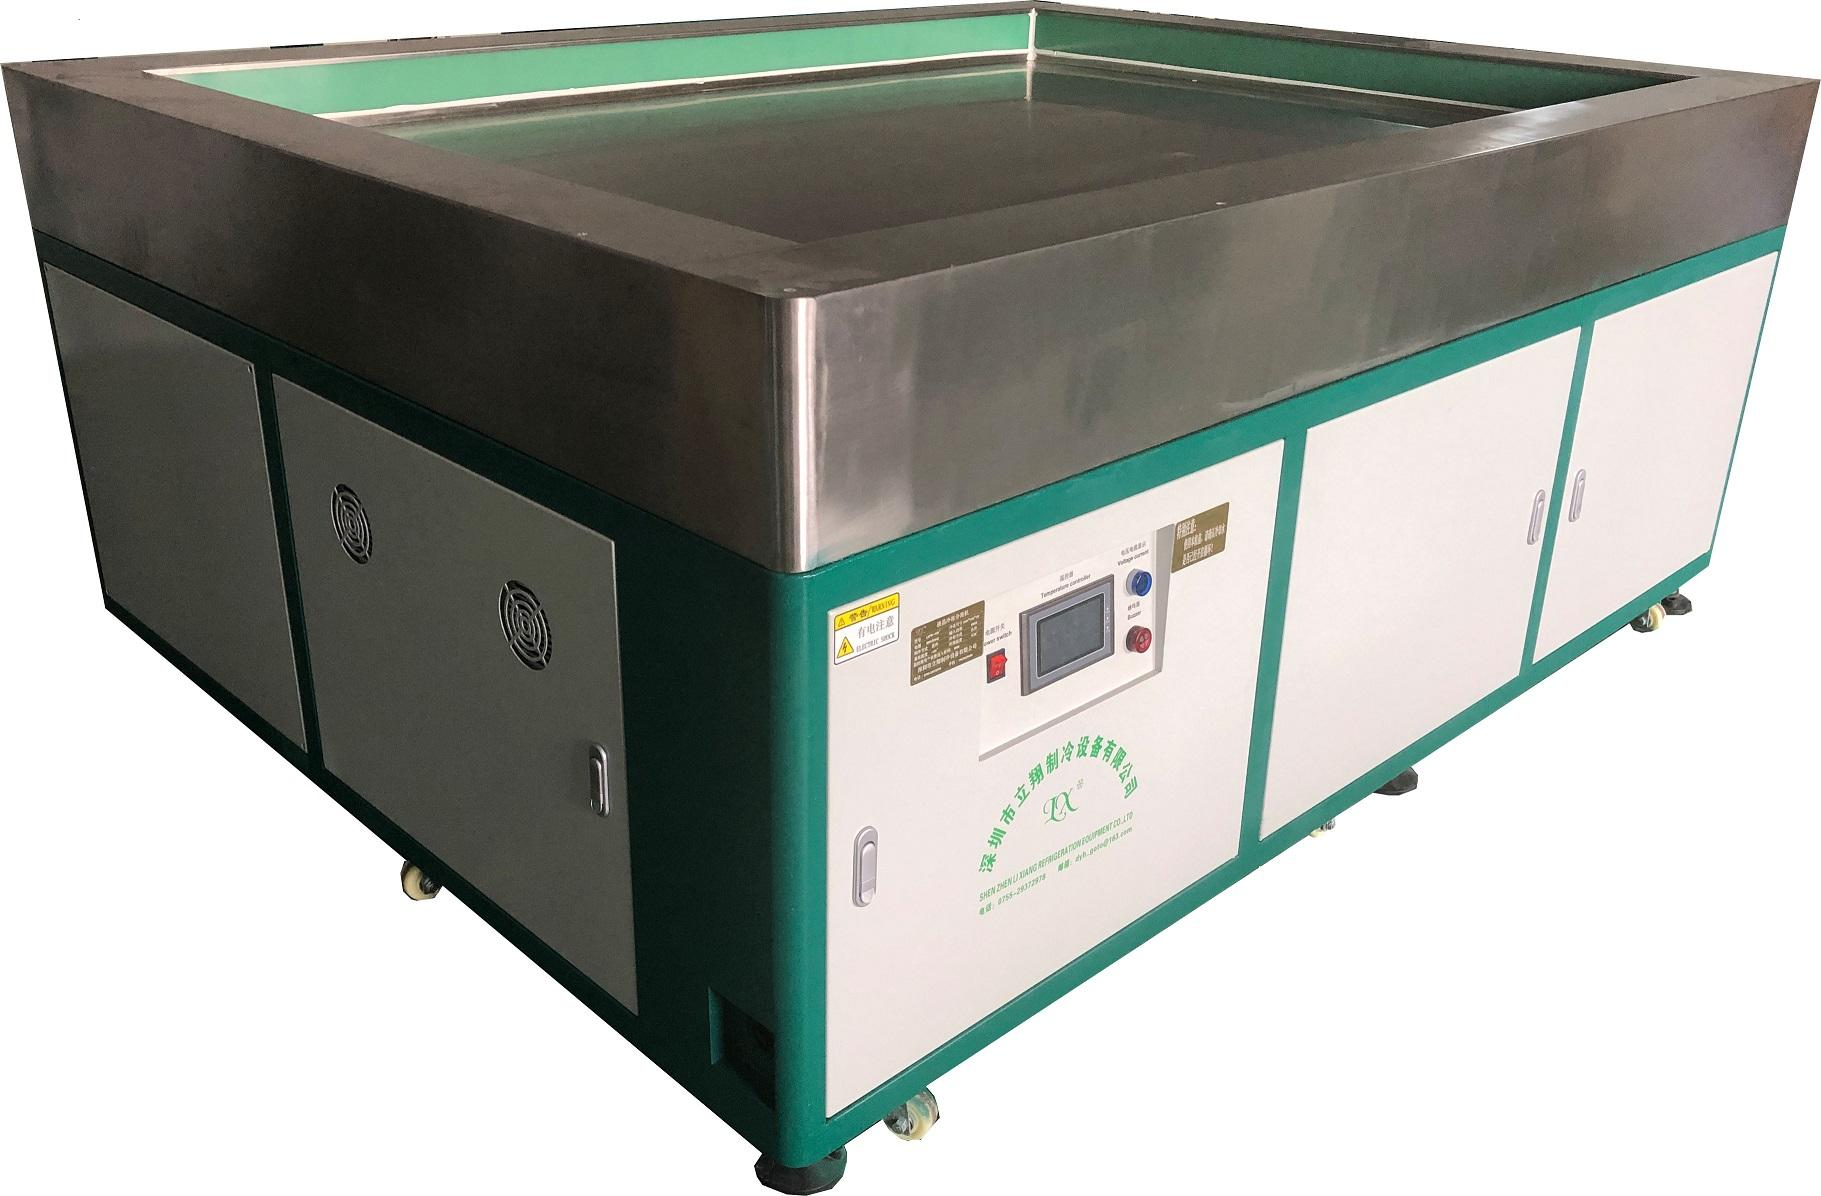 86 inch TV LCD Frozen separator machine